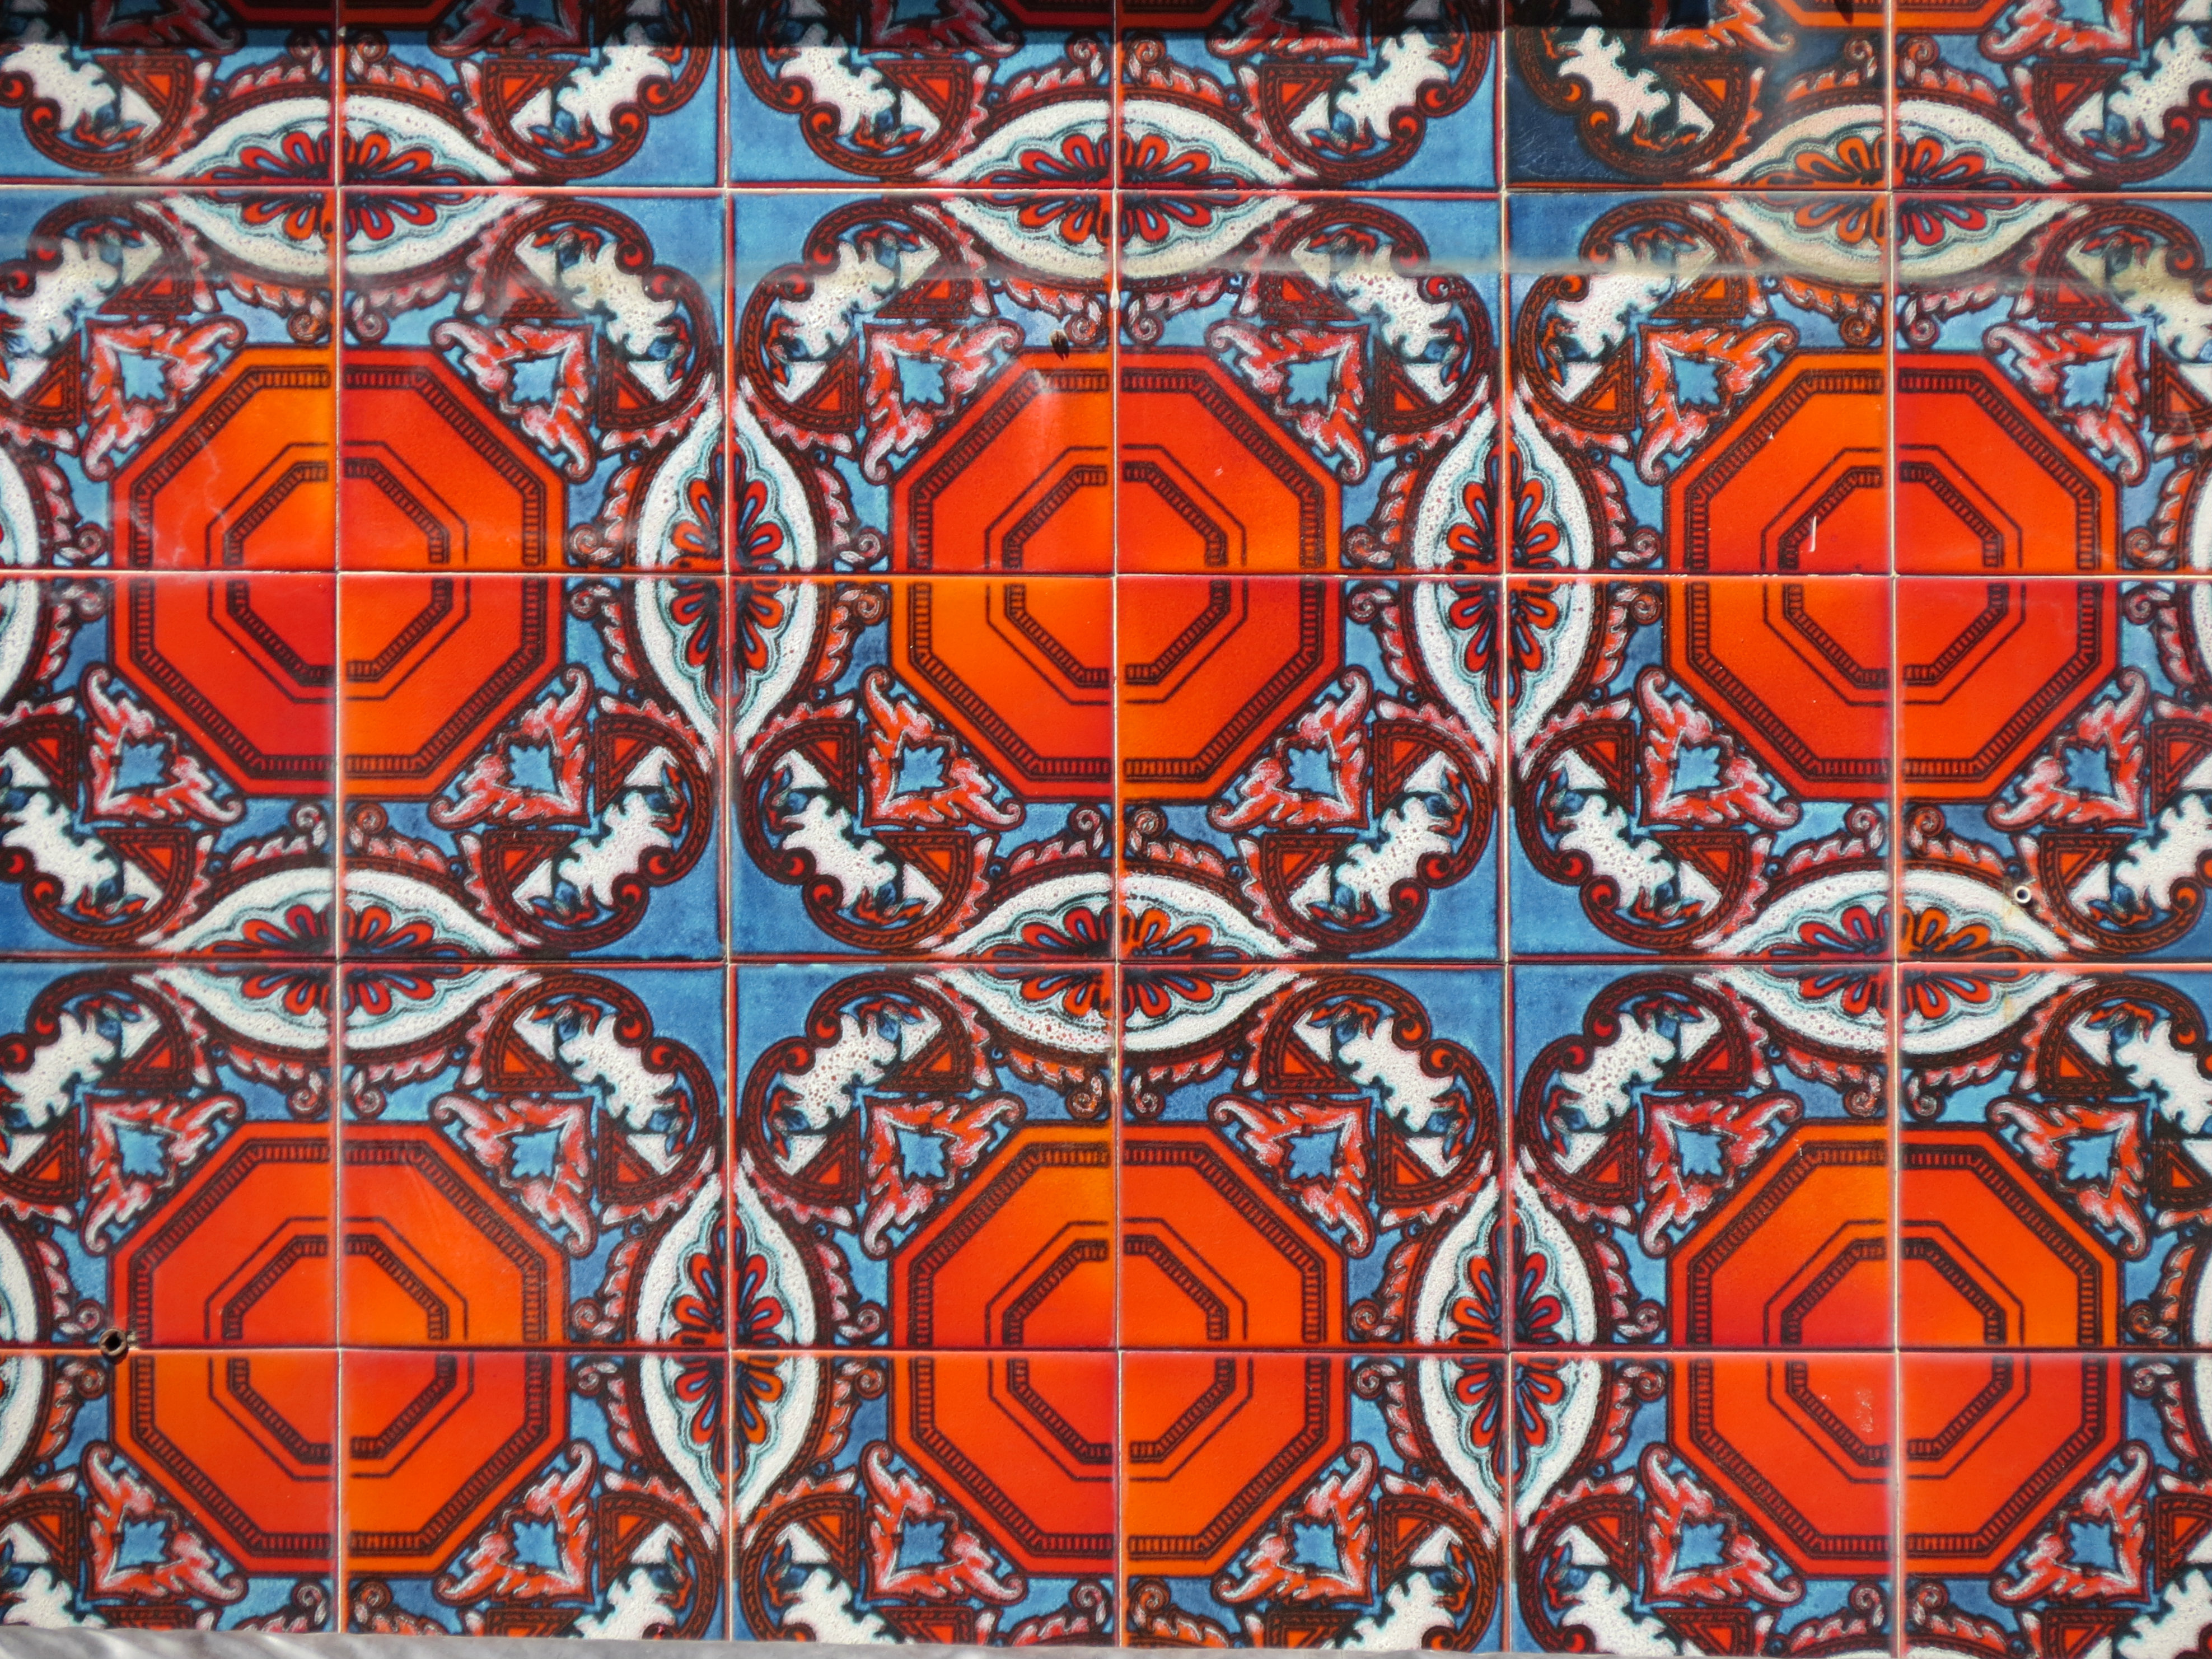 Colorful tiles in lisbon hoboish ceramic tiles called azulejos are a key feature of lisbons architecture a walk down any street will reveal colorful and detailed tilework on buildings doublecrazyfo Choice Image